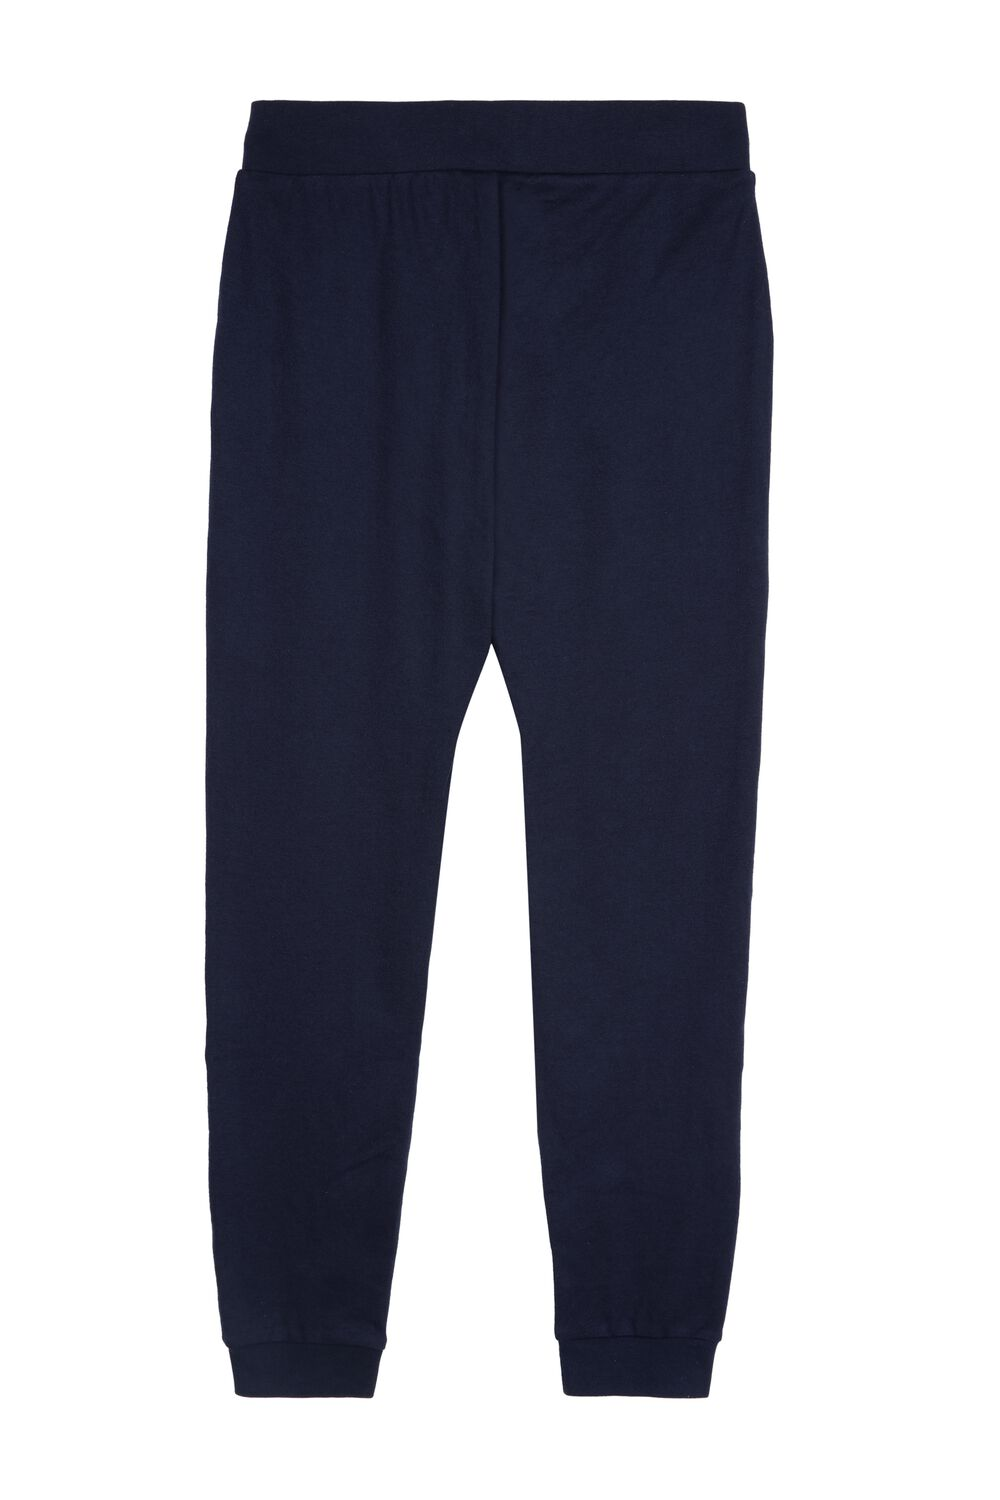 Long Trousers With Pockets and Piping Details